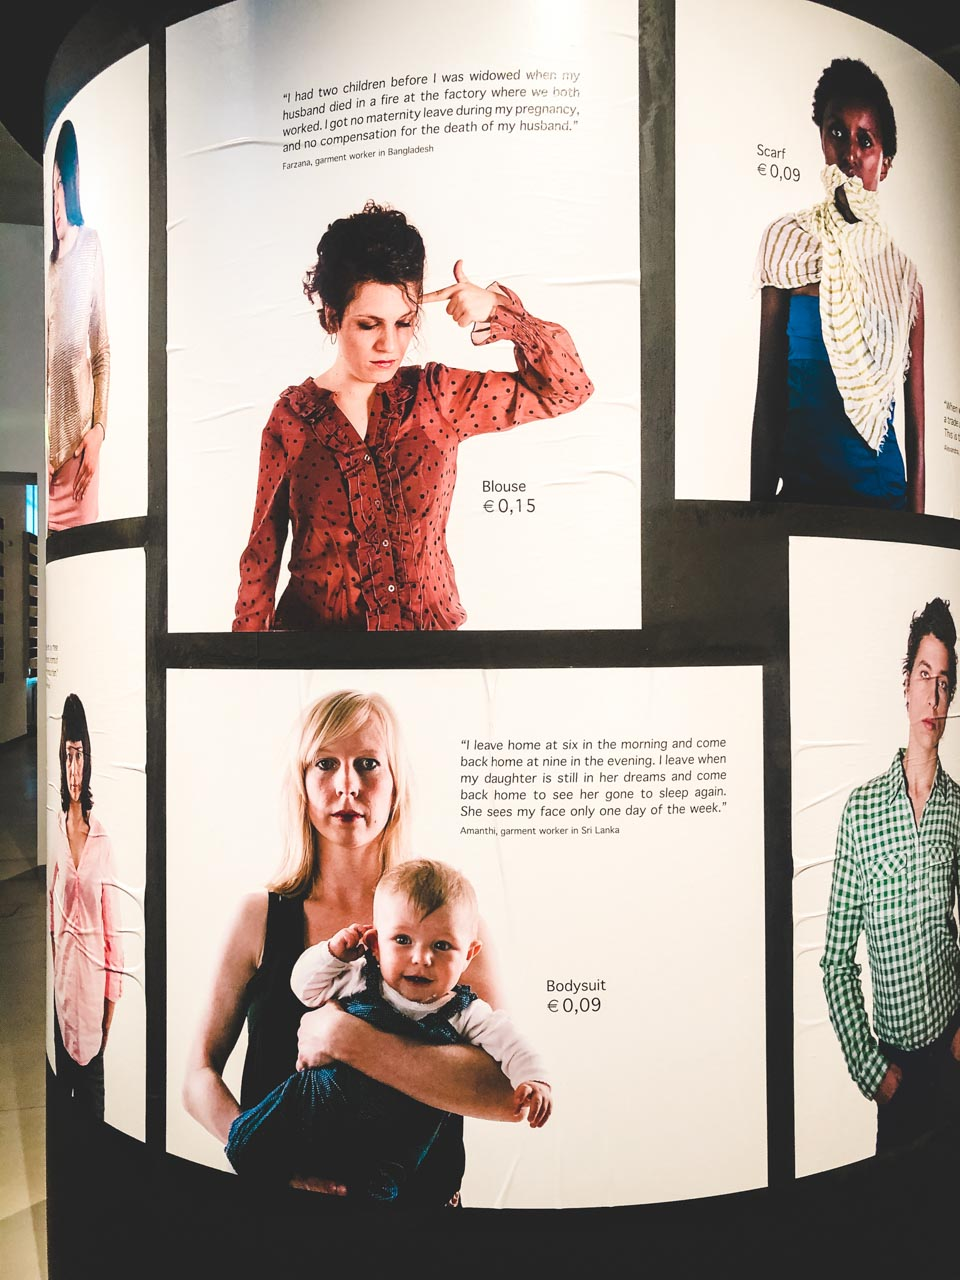 Photos of women wearing fast fashion clothing next to quotes by factory workers